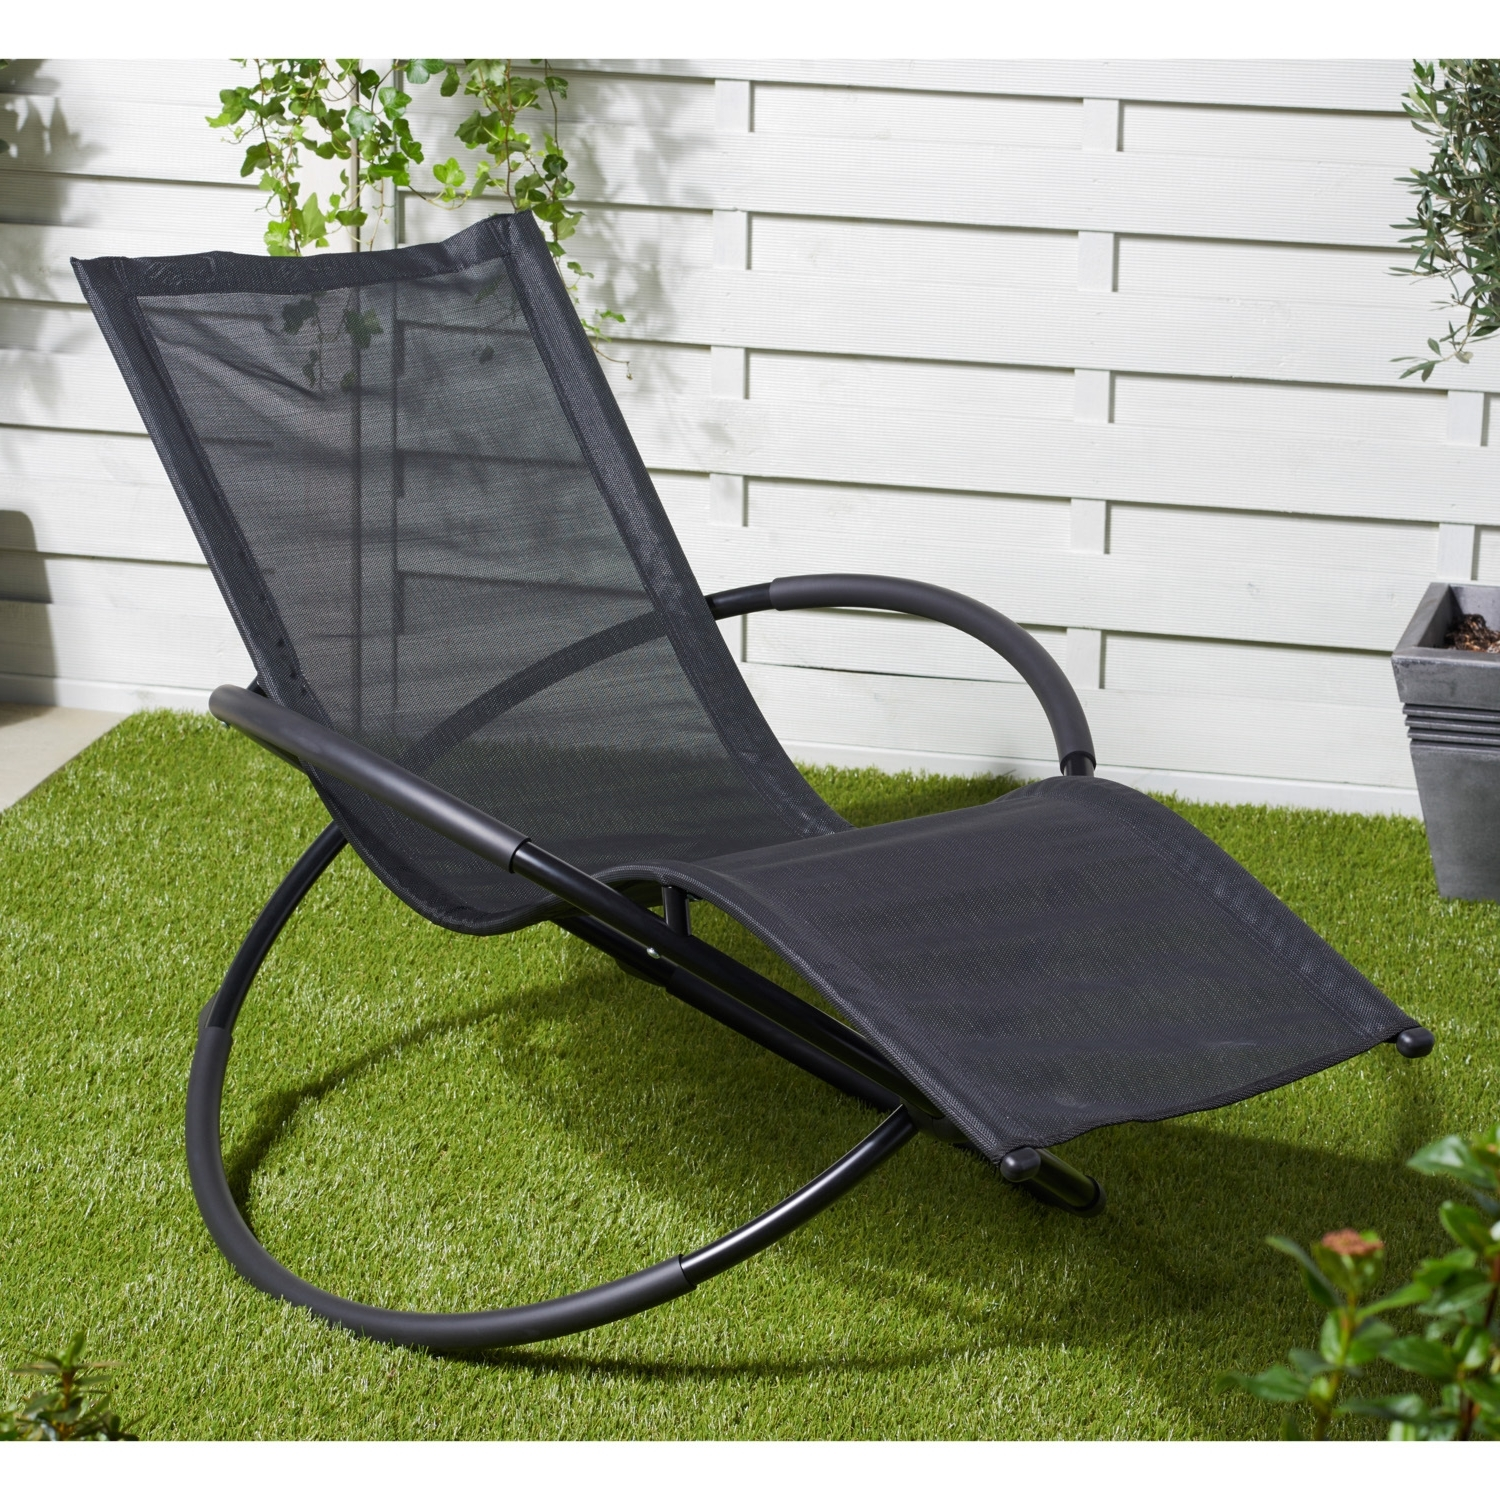 Well Known Florida Garden Rocking Chair Pertaining To Rocking Chairs For Garden (View 15 of 15)